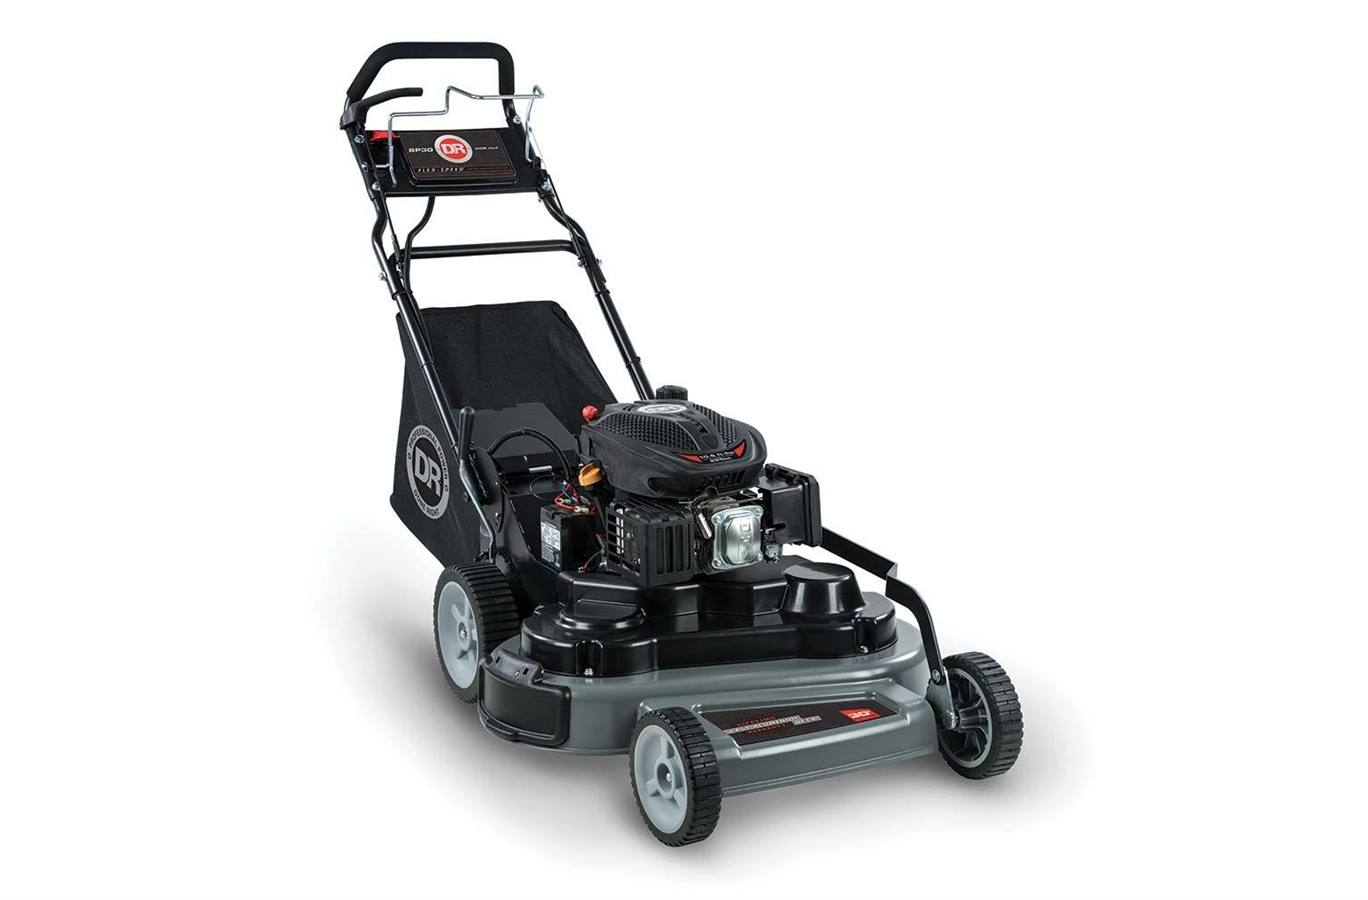 2020 Dr Power Dr Self Propelled Lawn Mower Electric Start Wm15030den For Sale In Staten Island Ny Trimalawn Equipment Staten Island Ny 718 761 5166